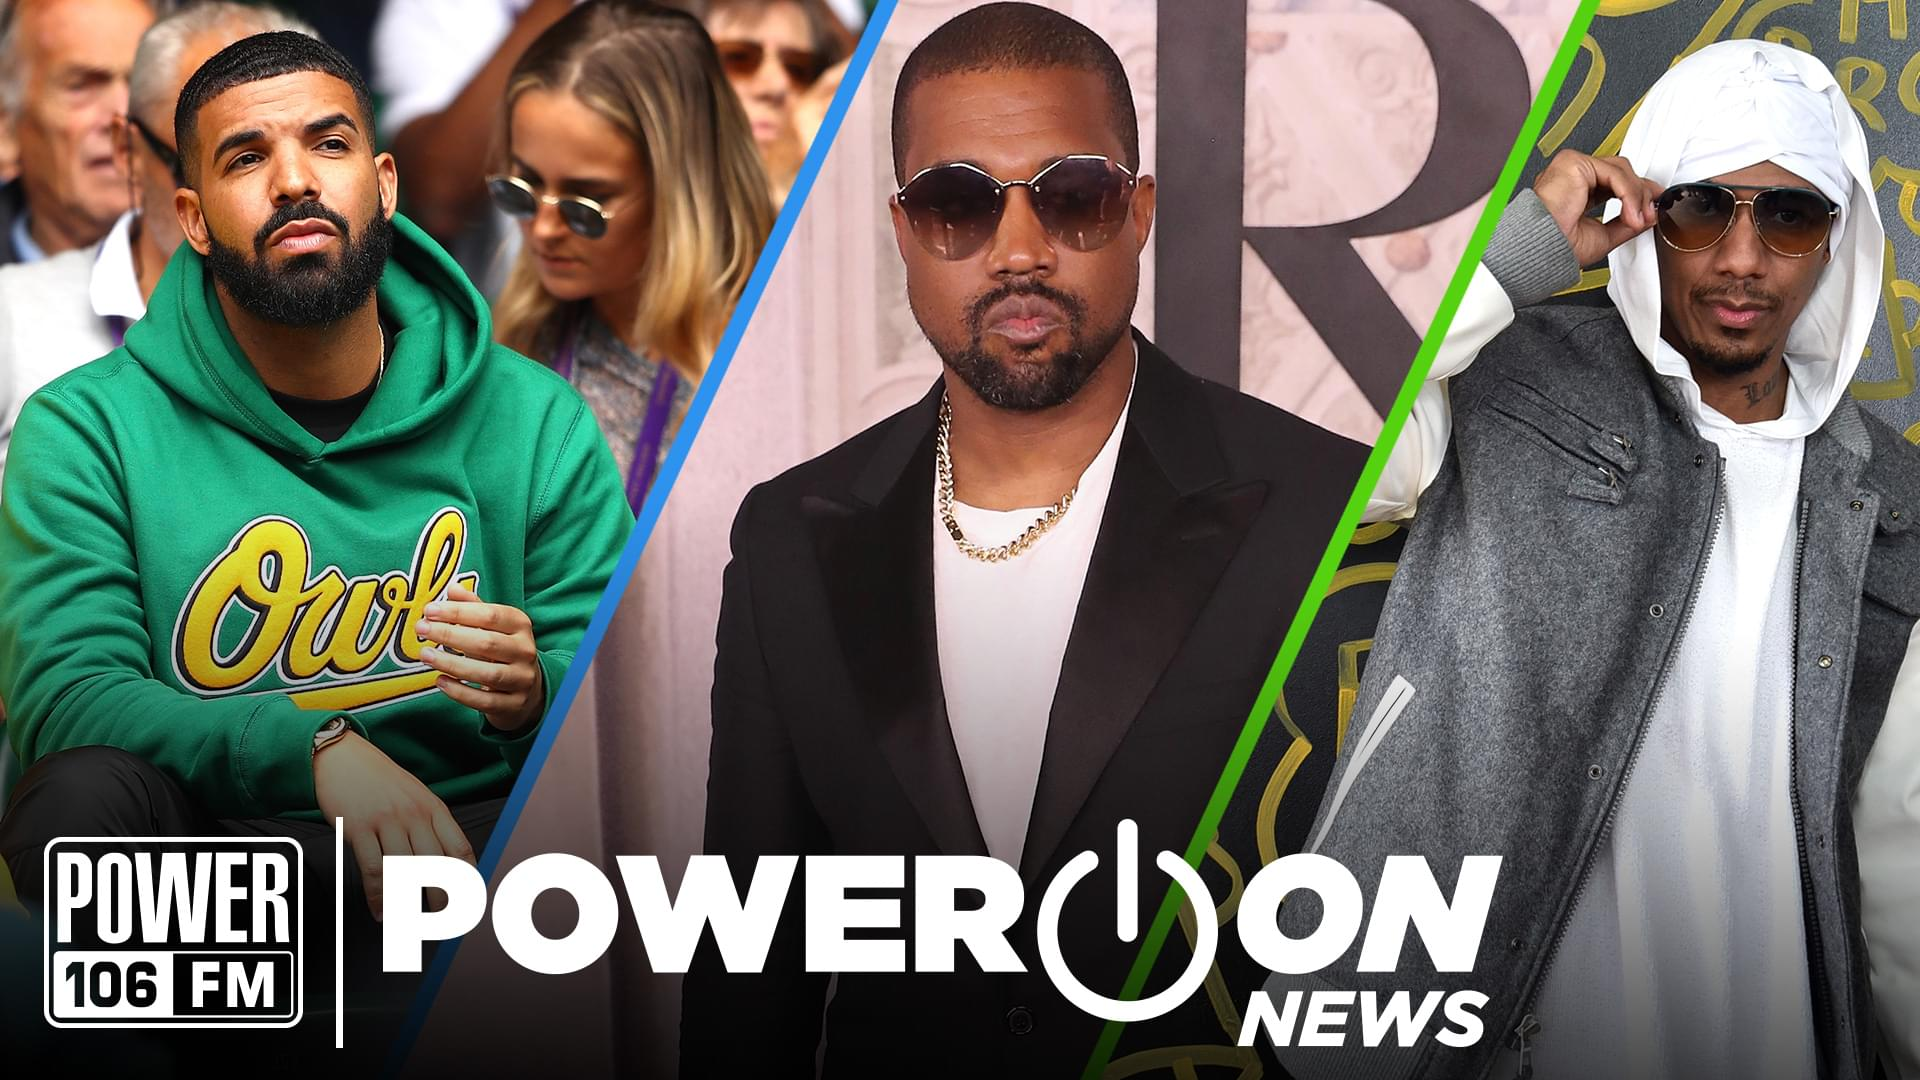 #PowerOn: Bryhana Breaks Down Kanye's IG Rant, Suge Knight's 28-Year Prison Sentence + MORE